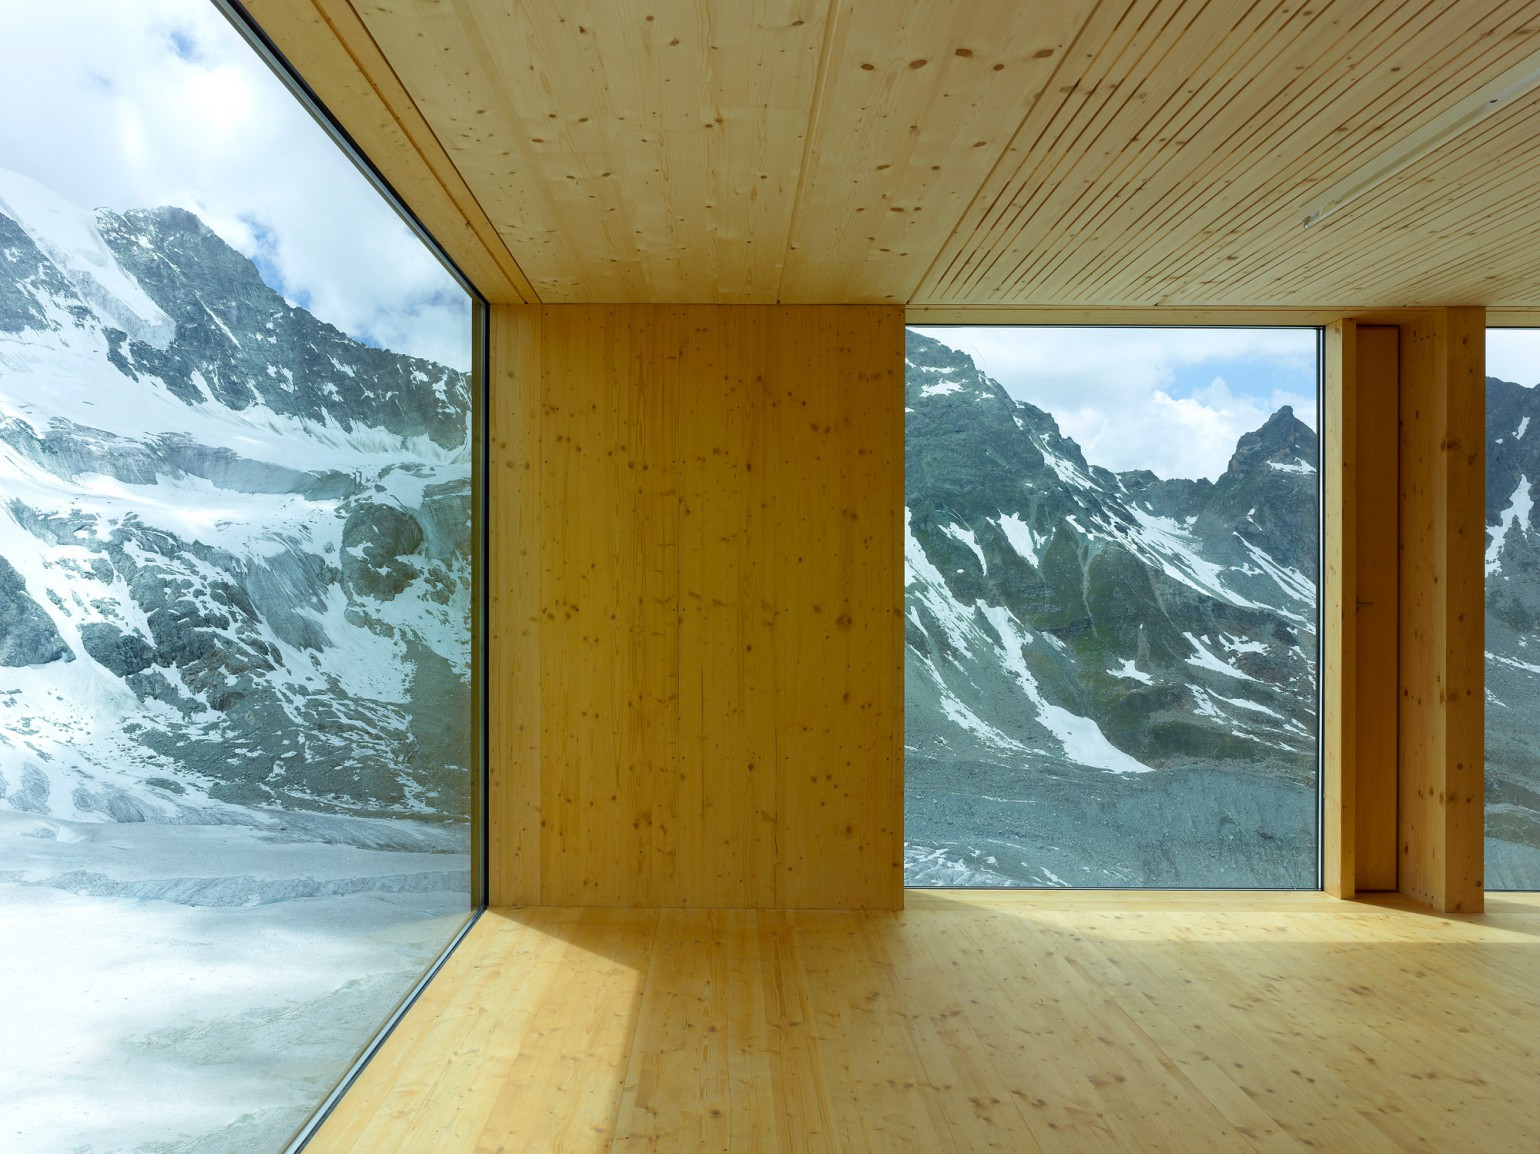 cabane-de-moiry-meyer-architecture-sion-05